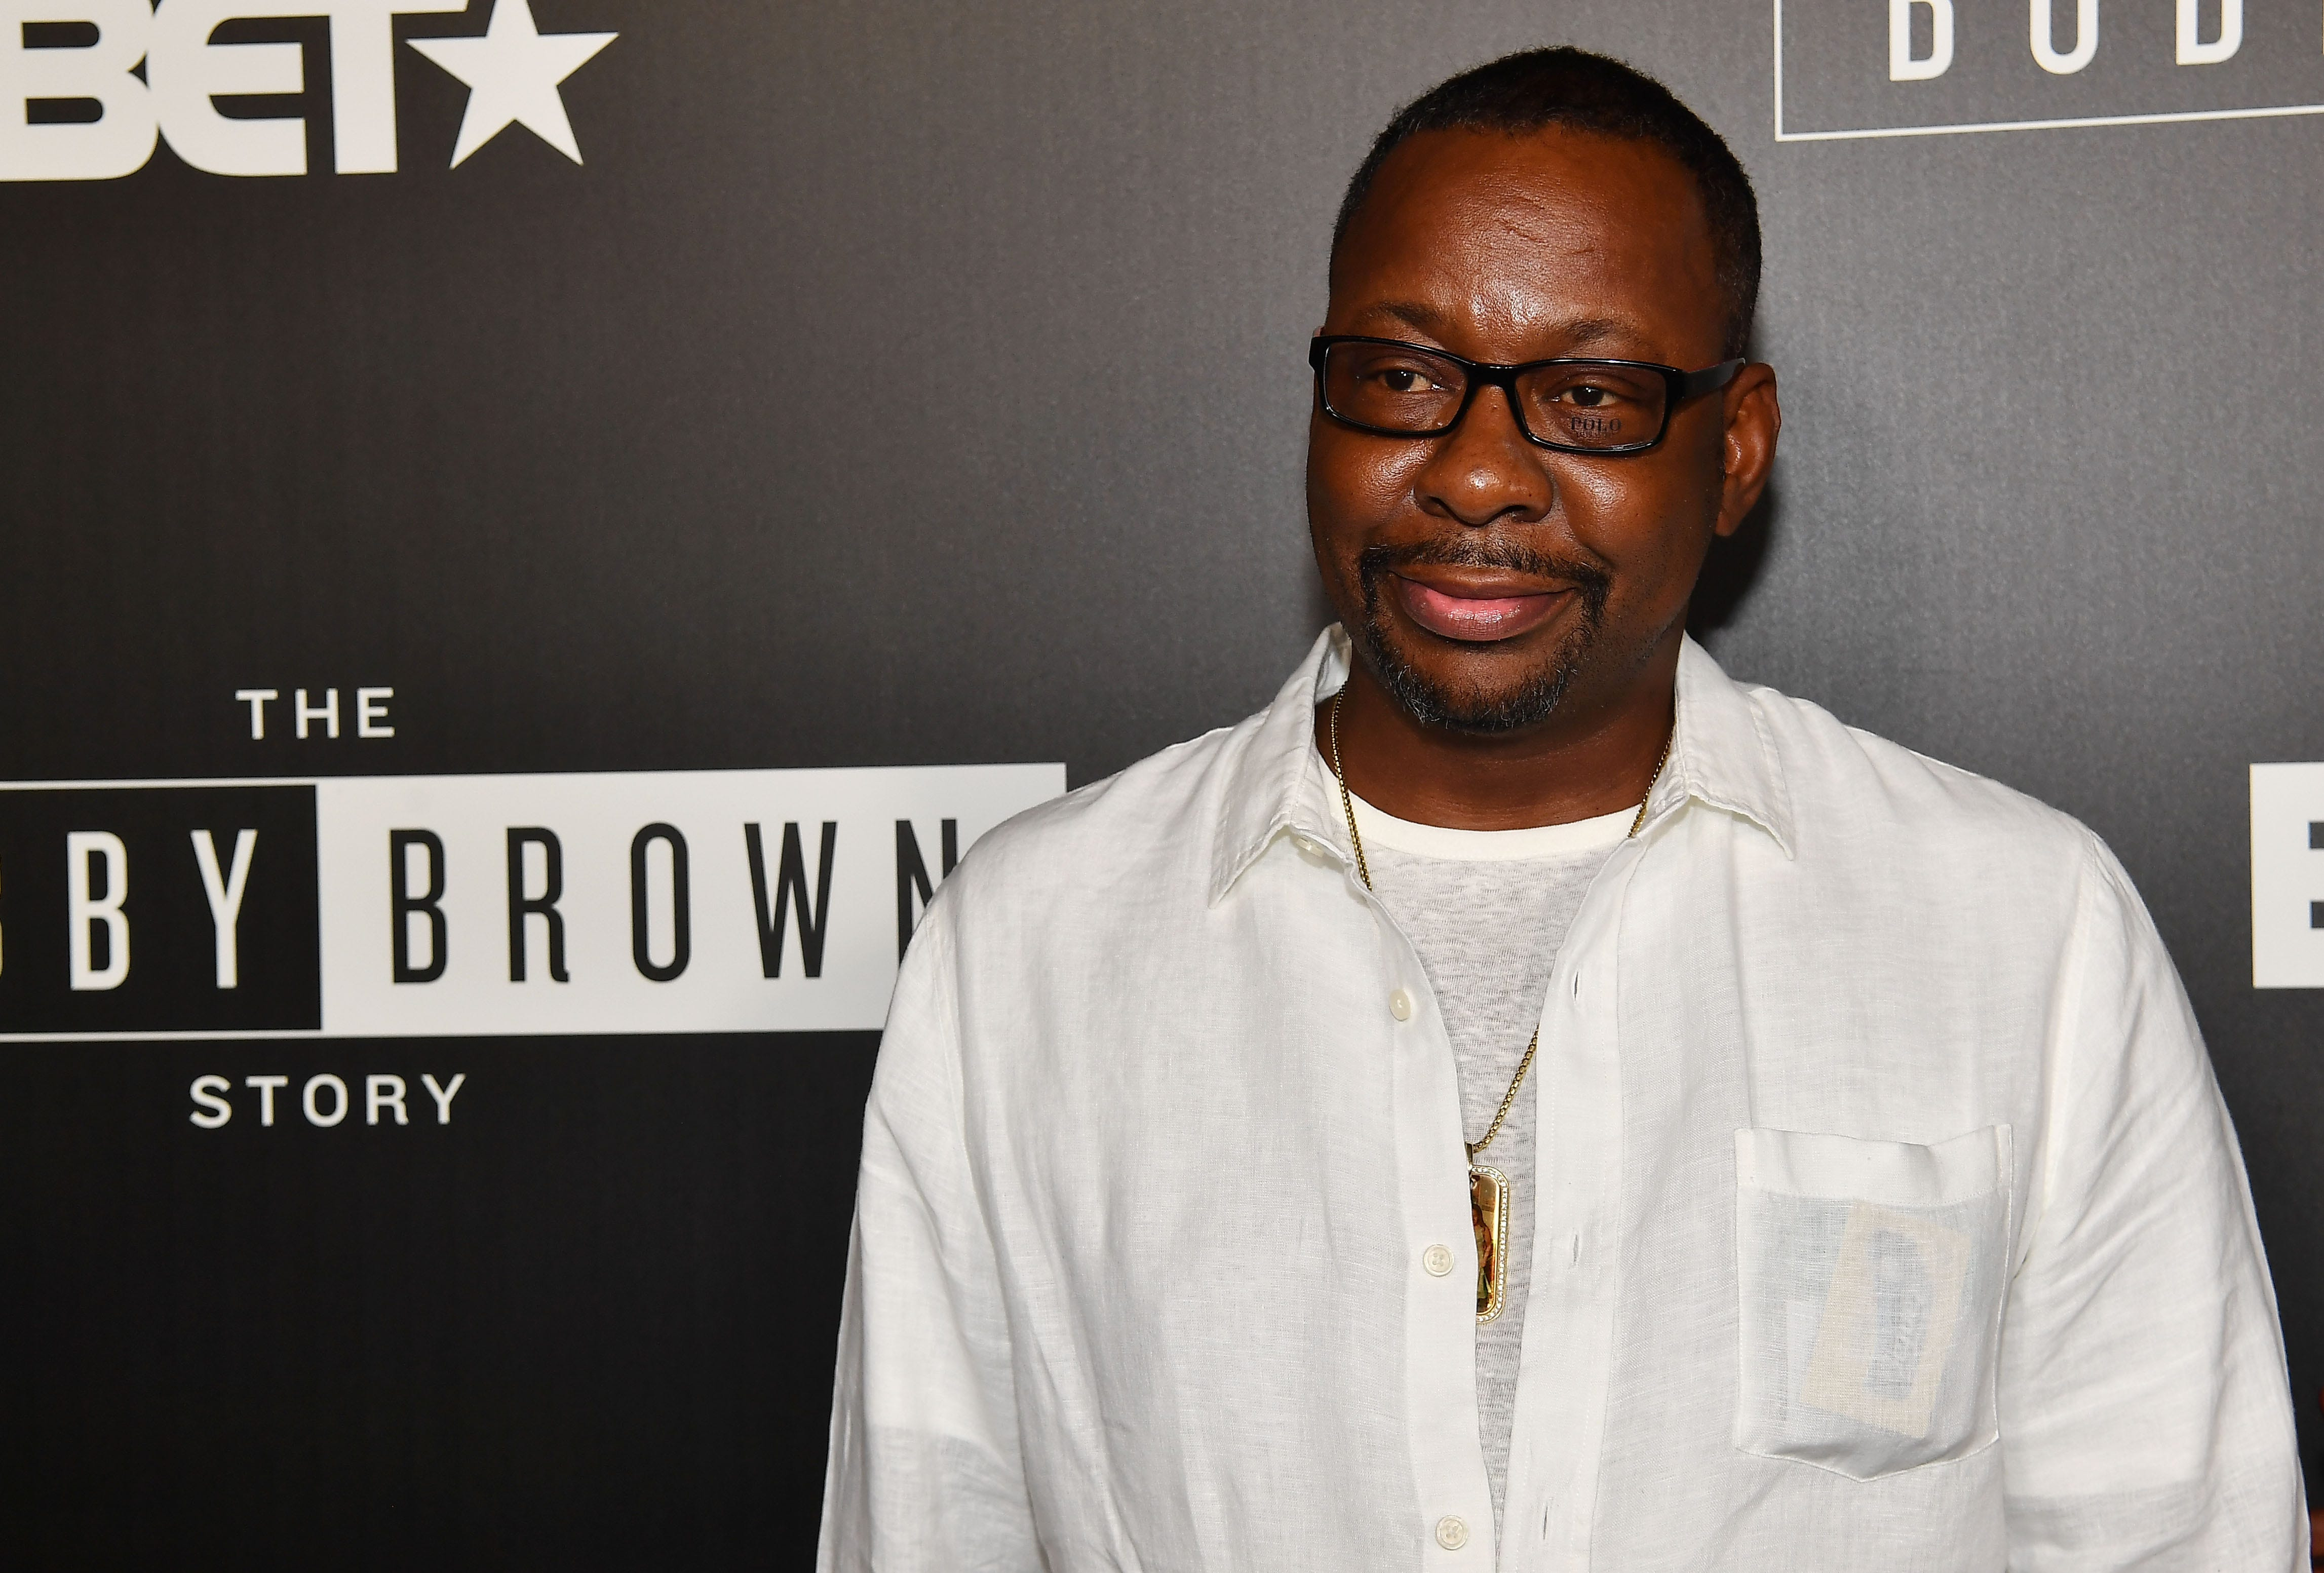 Bobby Brown slams Chris Rock over Whitney Houston drug joke: 'I thought you was a friend'